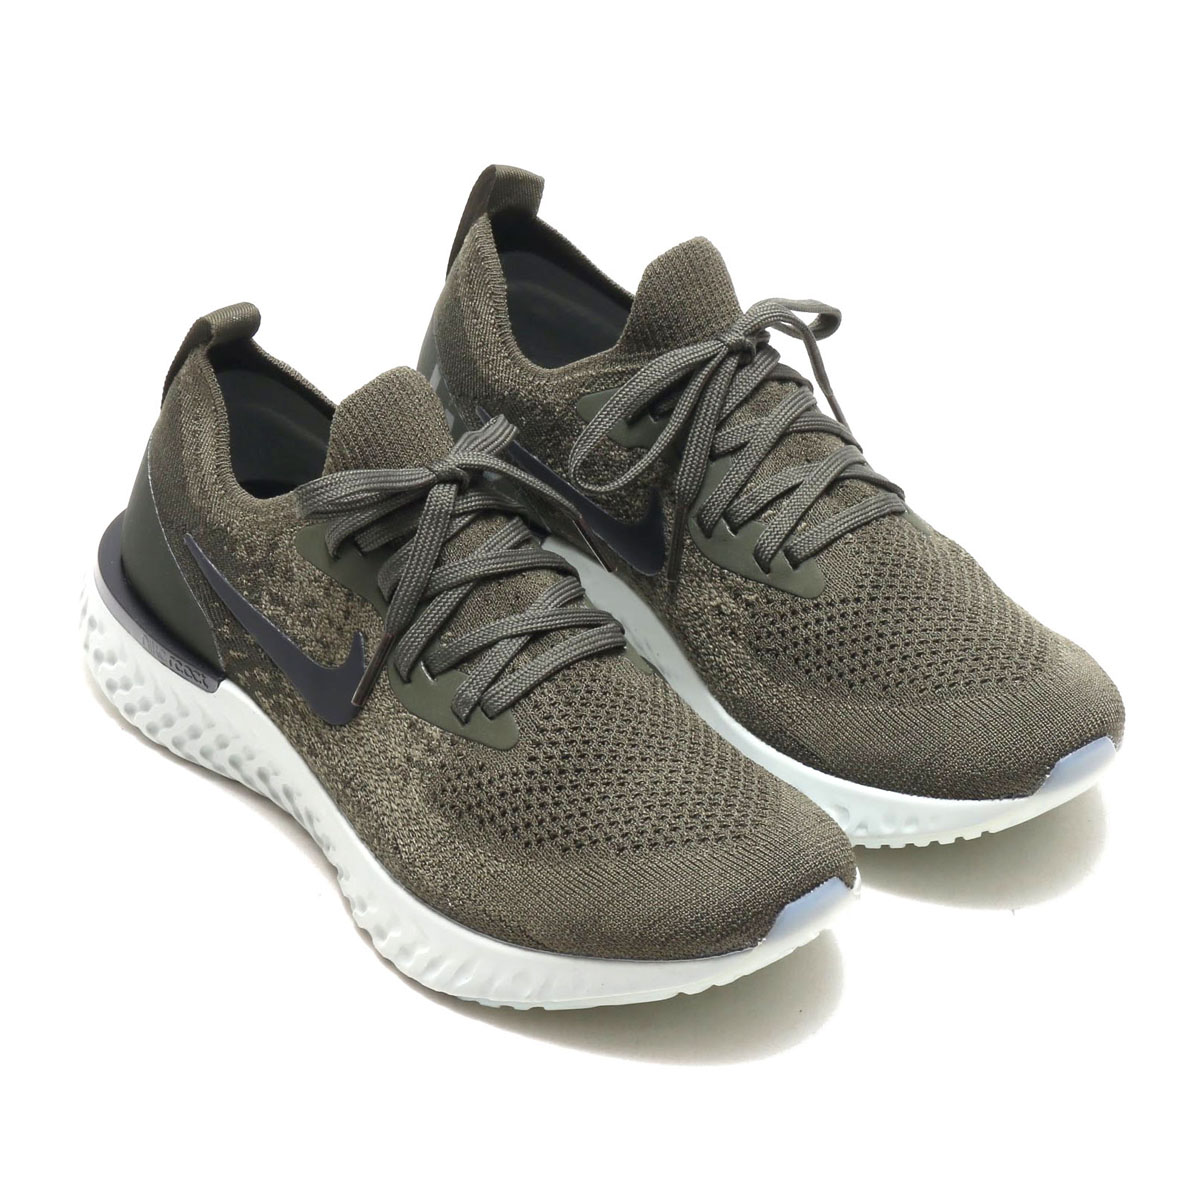 3f89d55480ed NIKE WMNS EPIC REACT FLYKNIT (Nike women epic re-act fly knit) (CARGO  KHAKI BLACK-SEQUOIA-LIGHT SILVER) 18SU-S